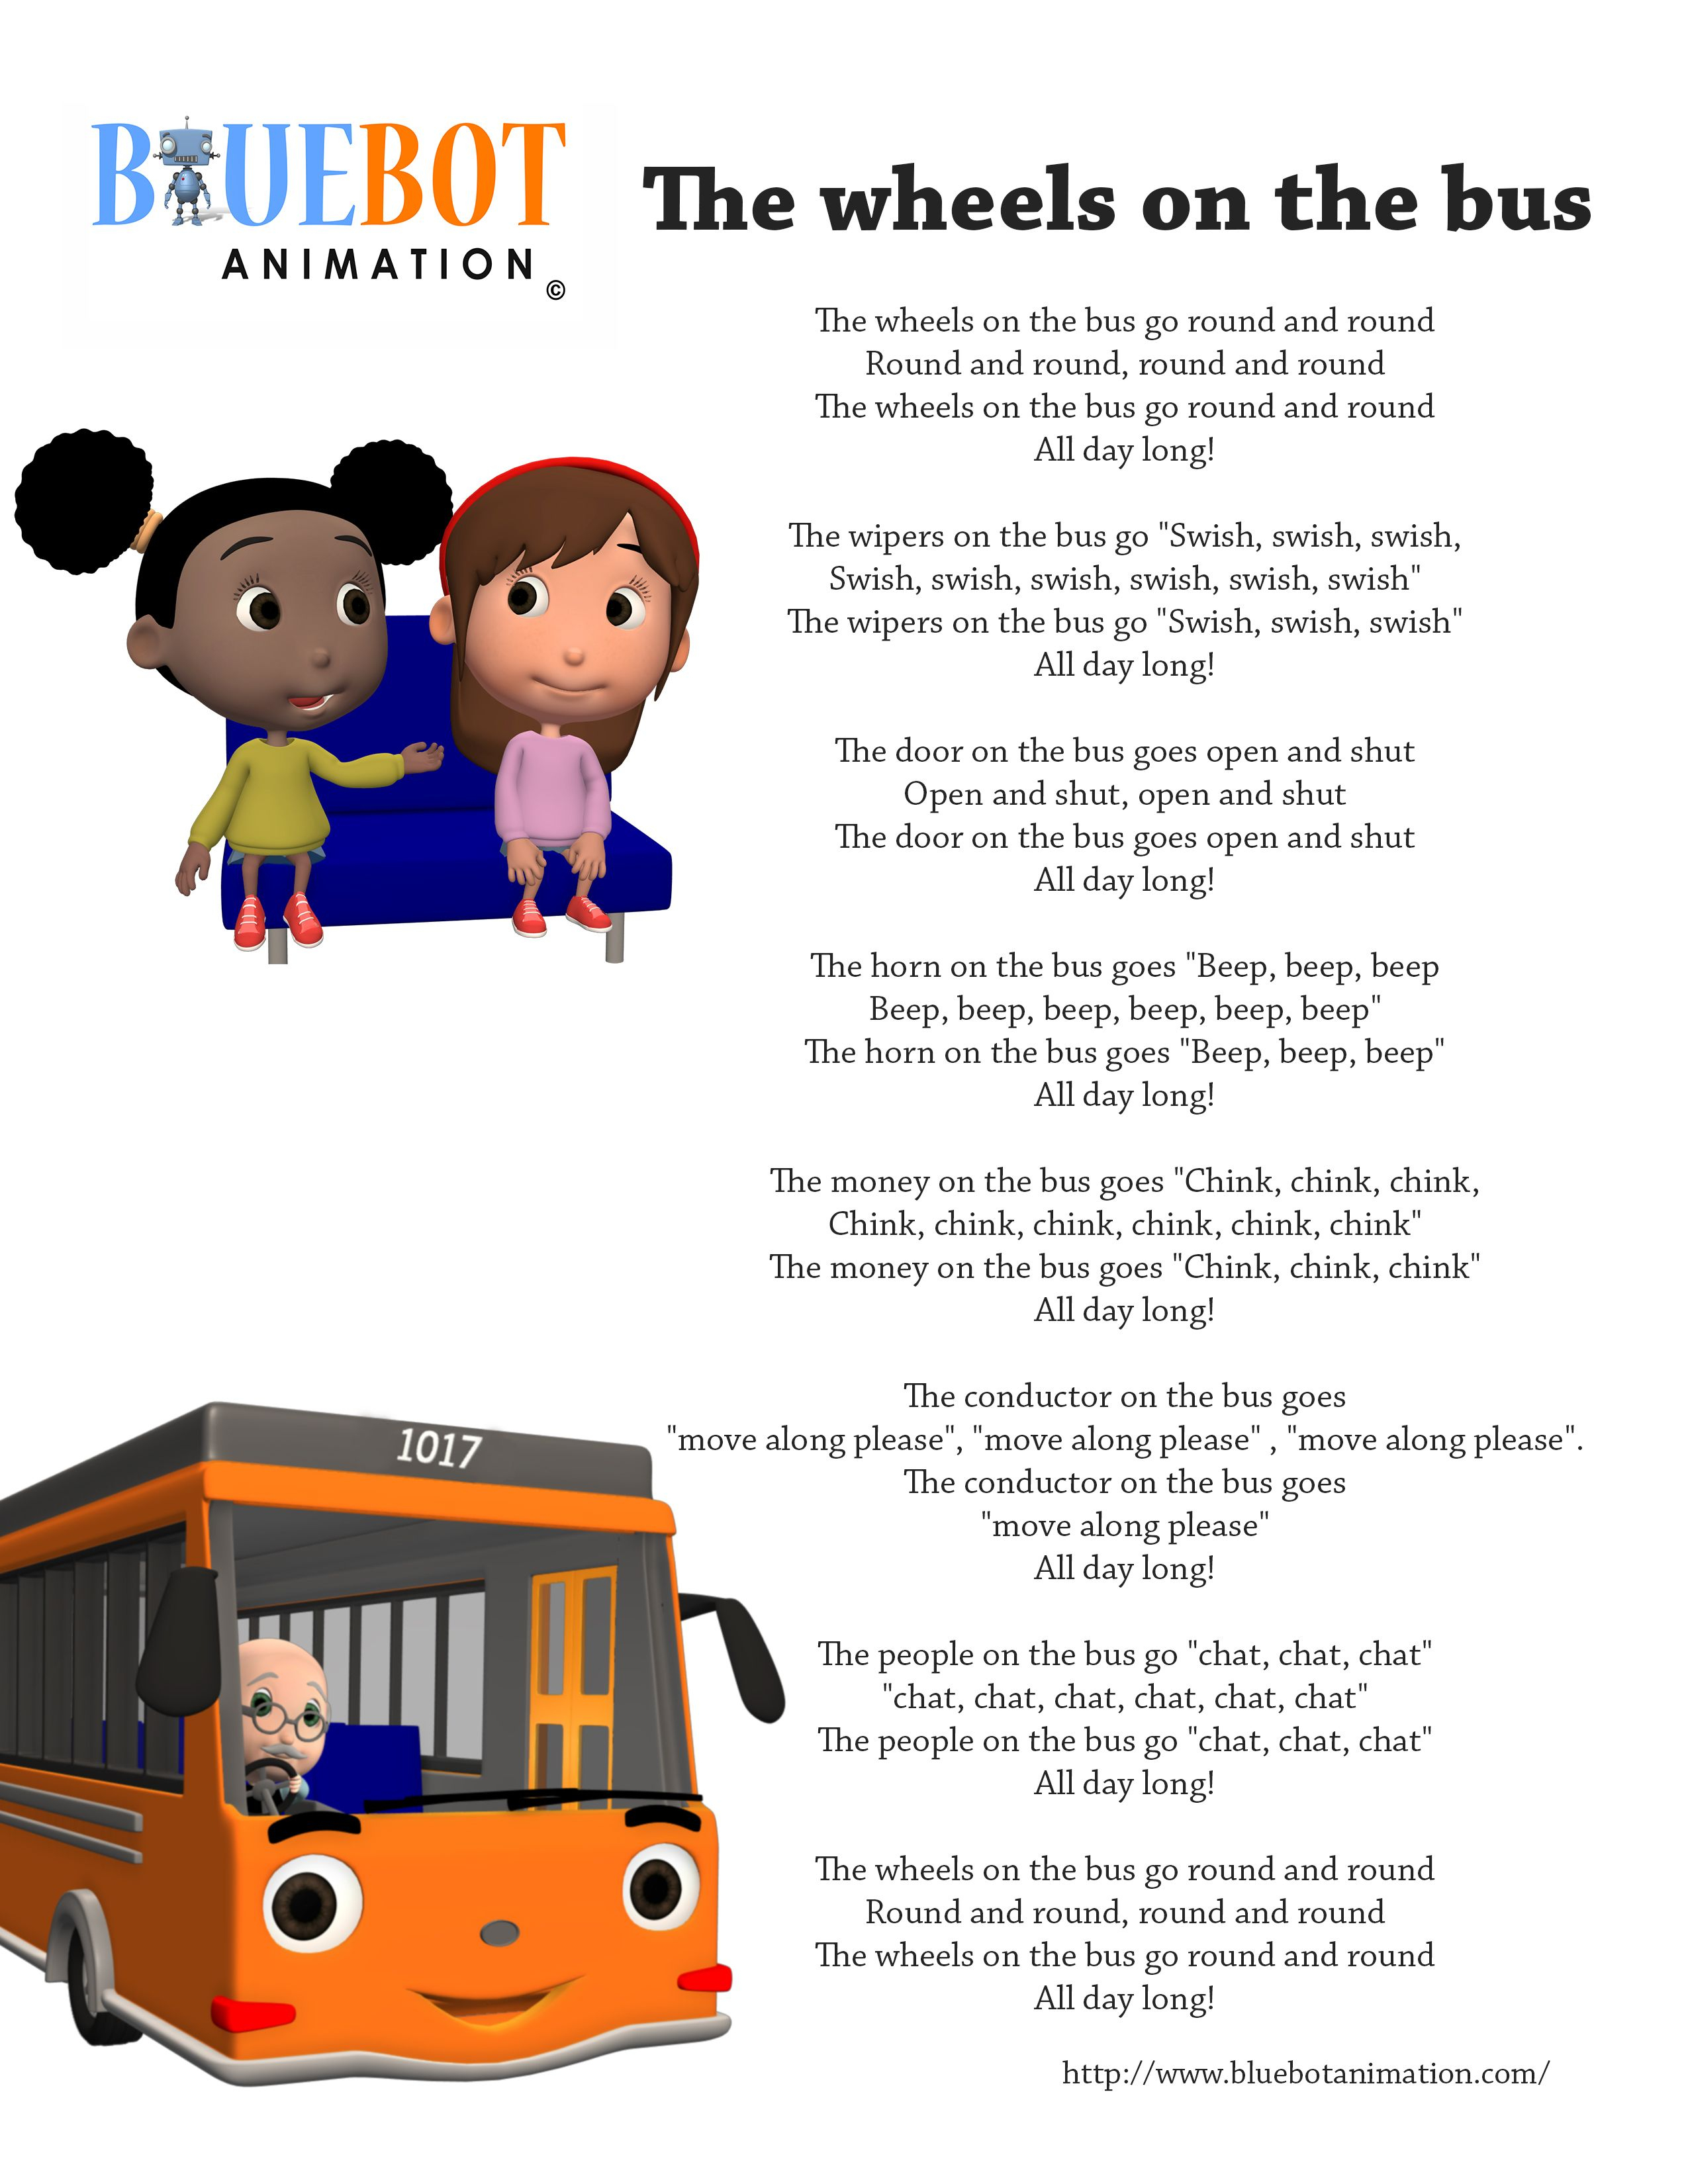 Wheels On The Bus Nursery Rhyme Lyrics Free Printable Nursery Rhyme - Free Printable Nursery Rhymes Songs